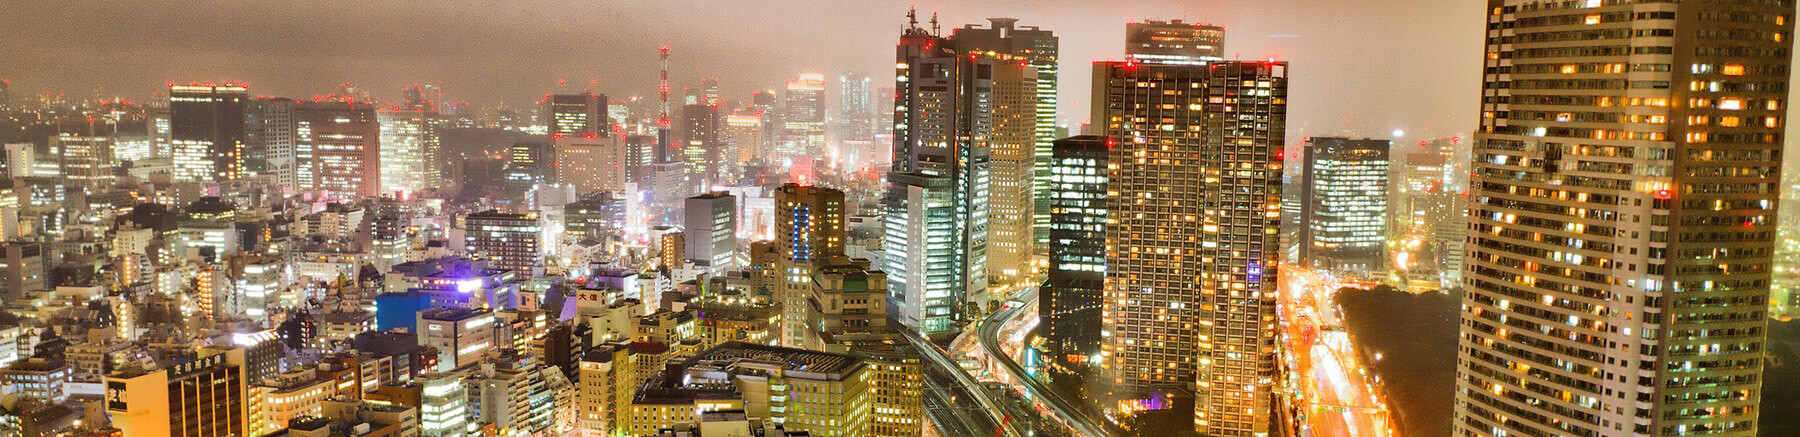 Living neighbourhood of Shiodome in Tokyo, Japan by night